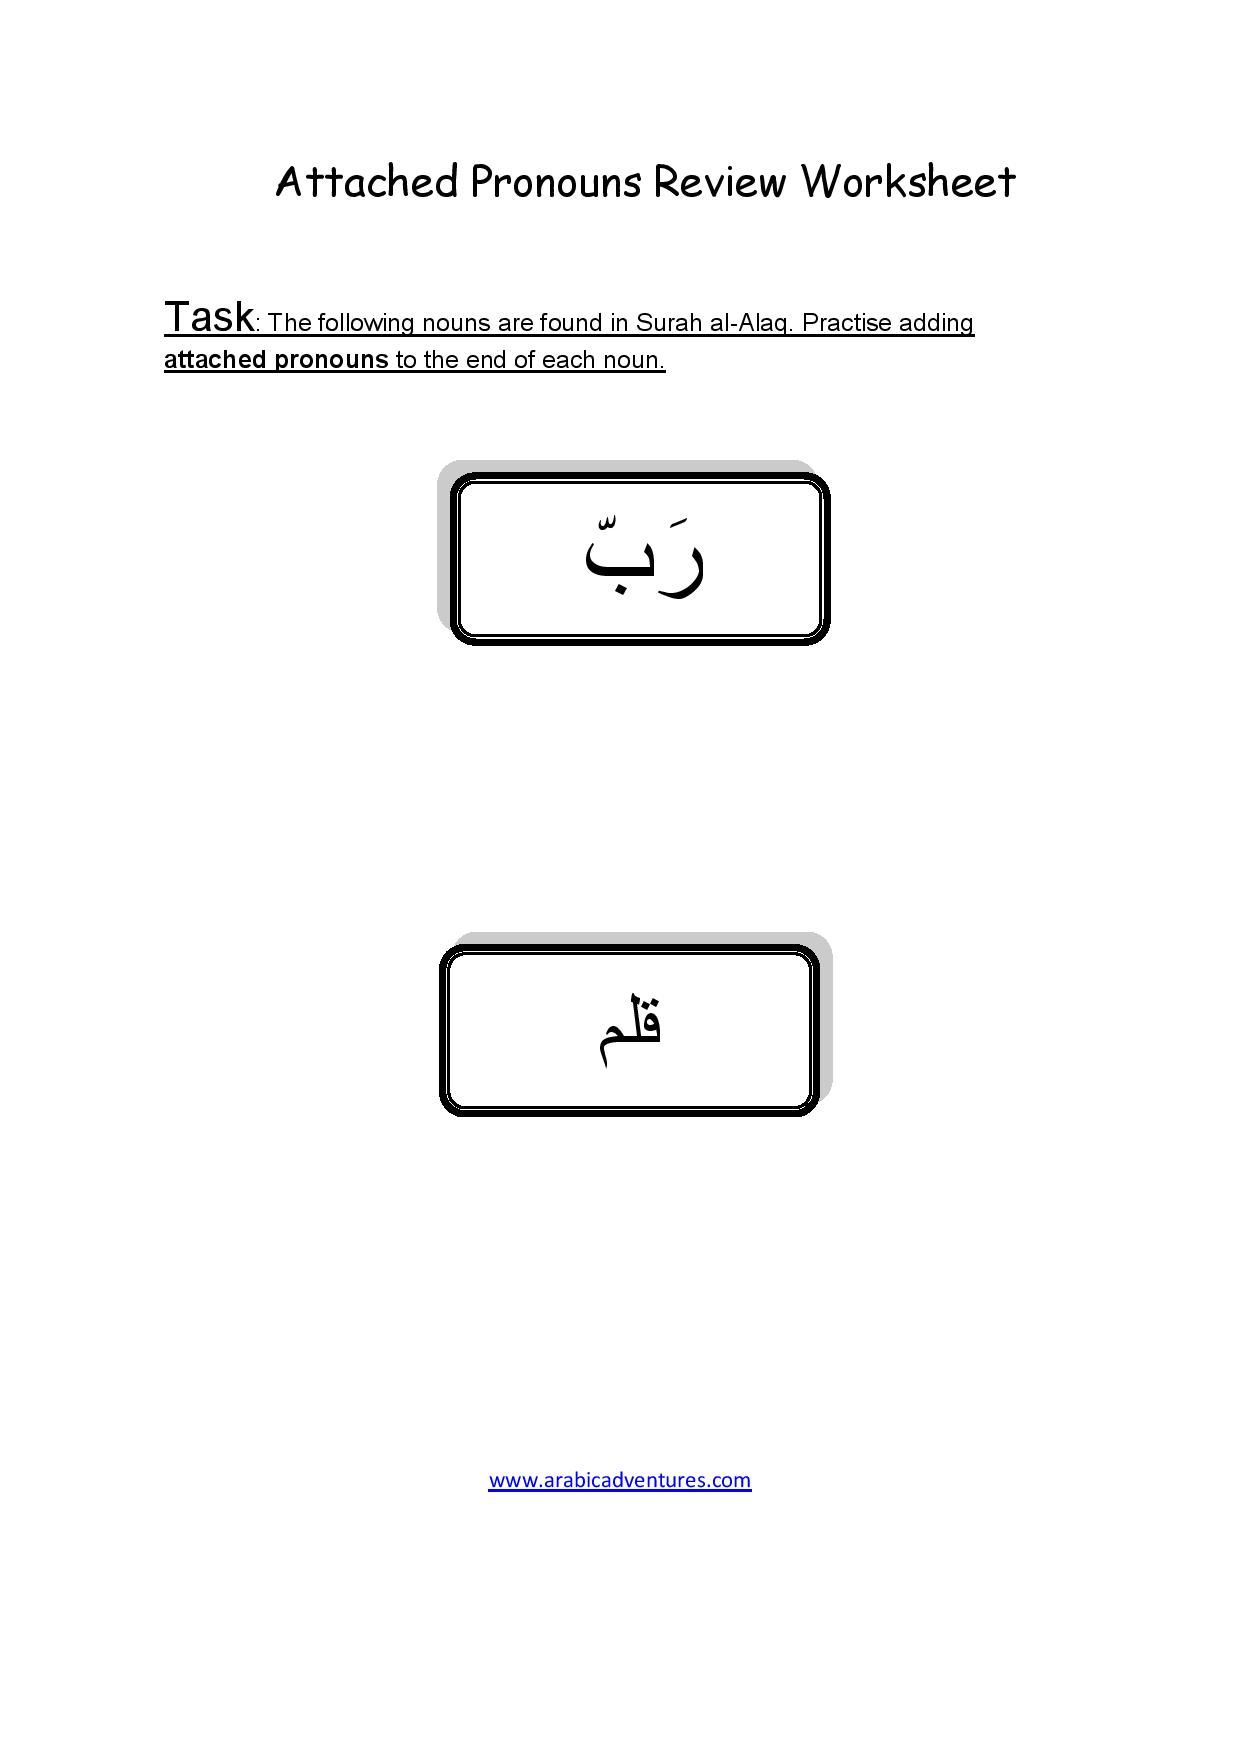 attached pronouns in Arabic worksheet free pdf at www